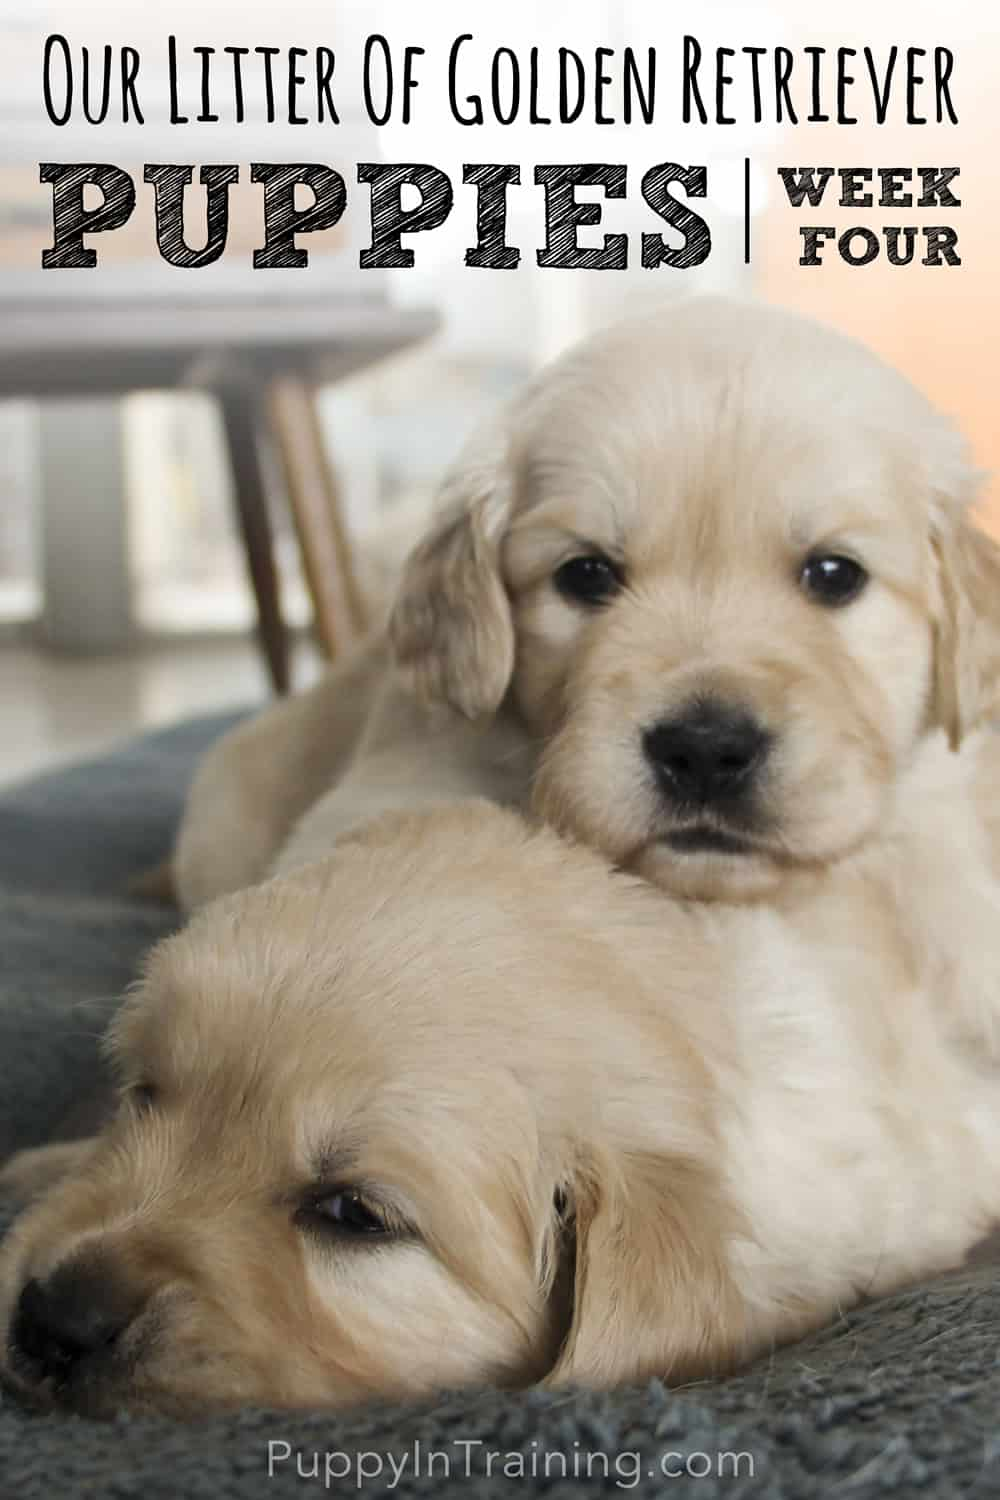 Golden Retriever Puppies Sisters